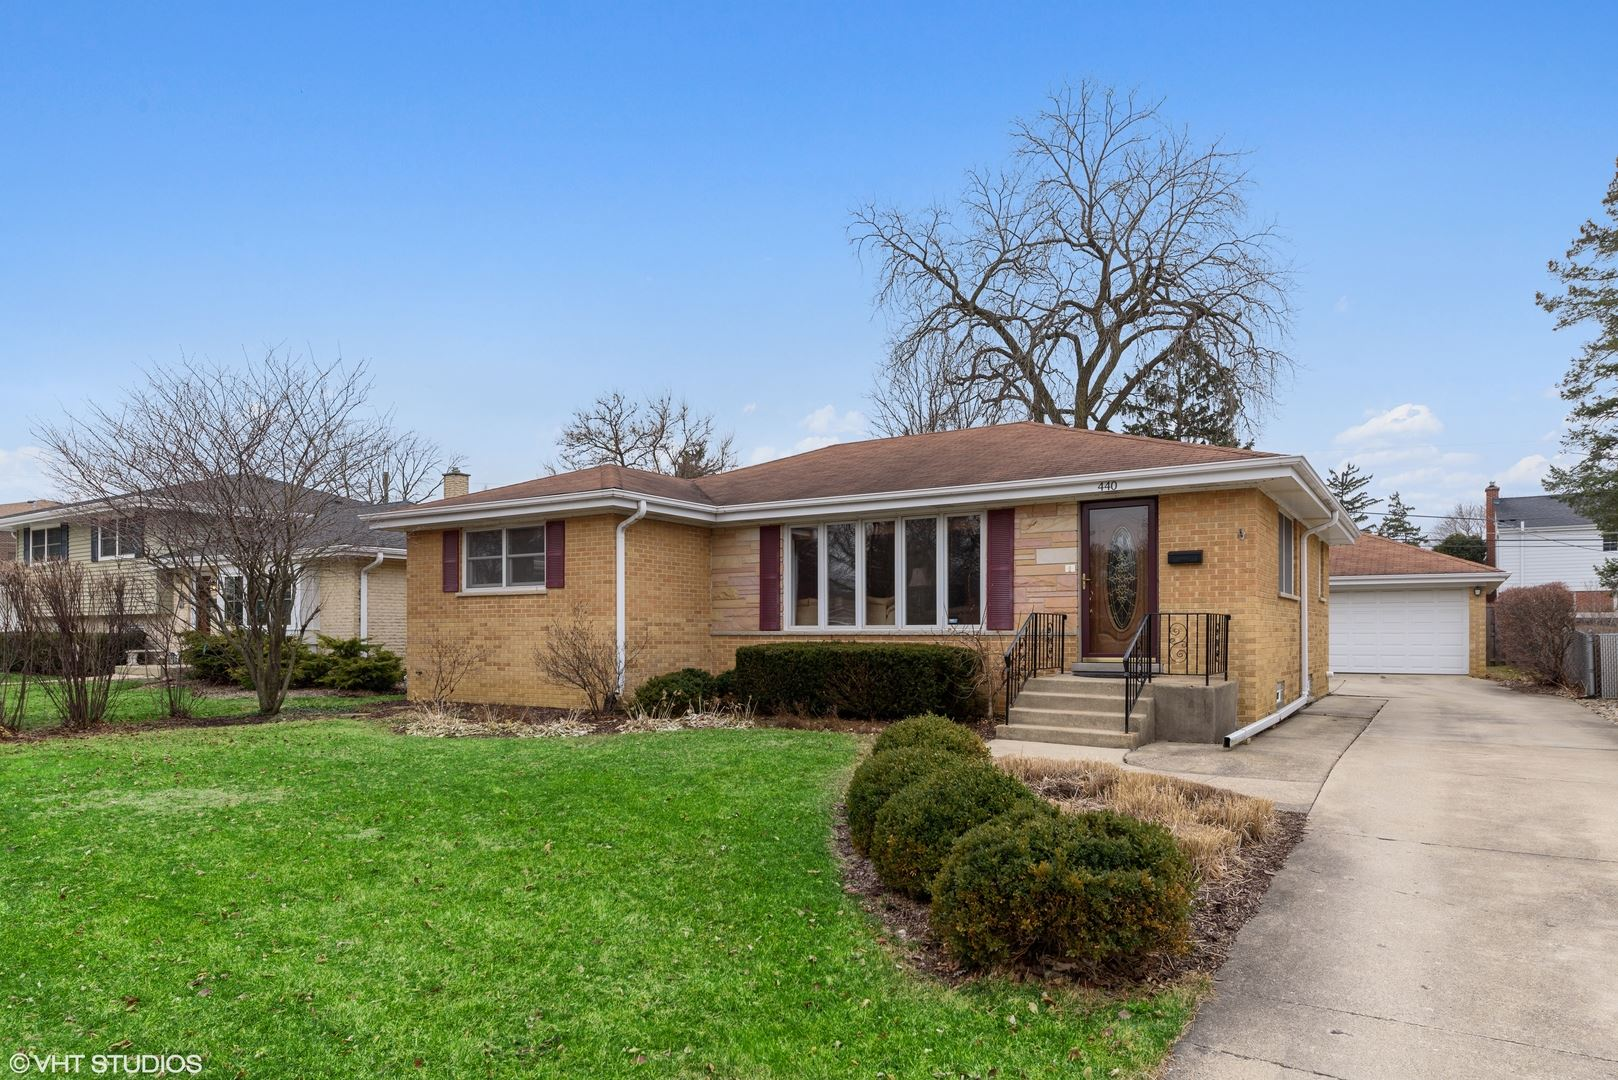 440 S Gibbons Avenue, Arlington Heights, IL 60004 - #: 10673285